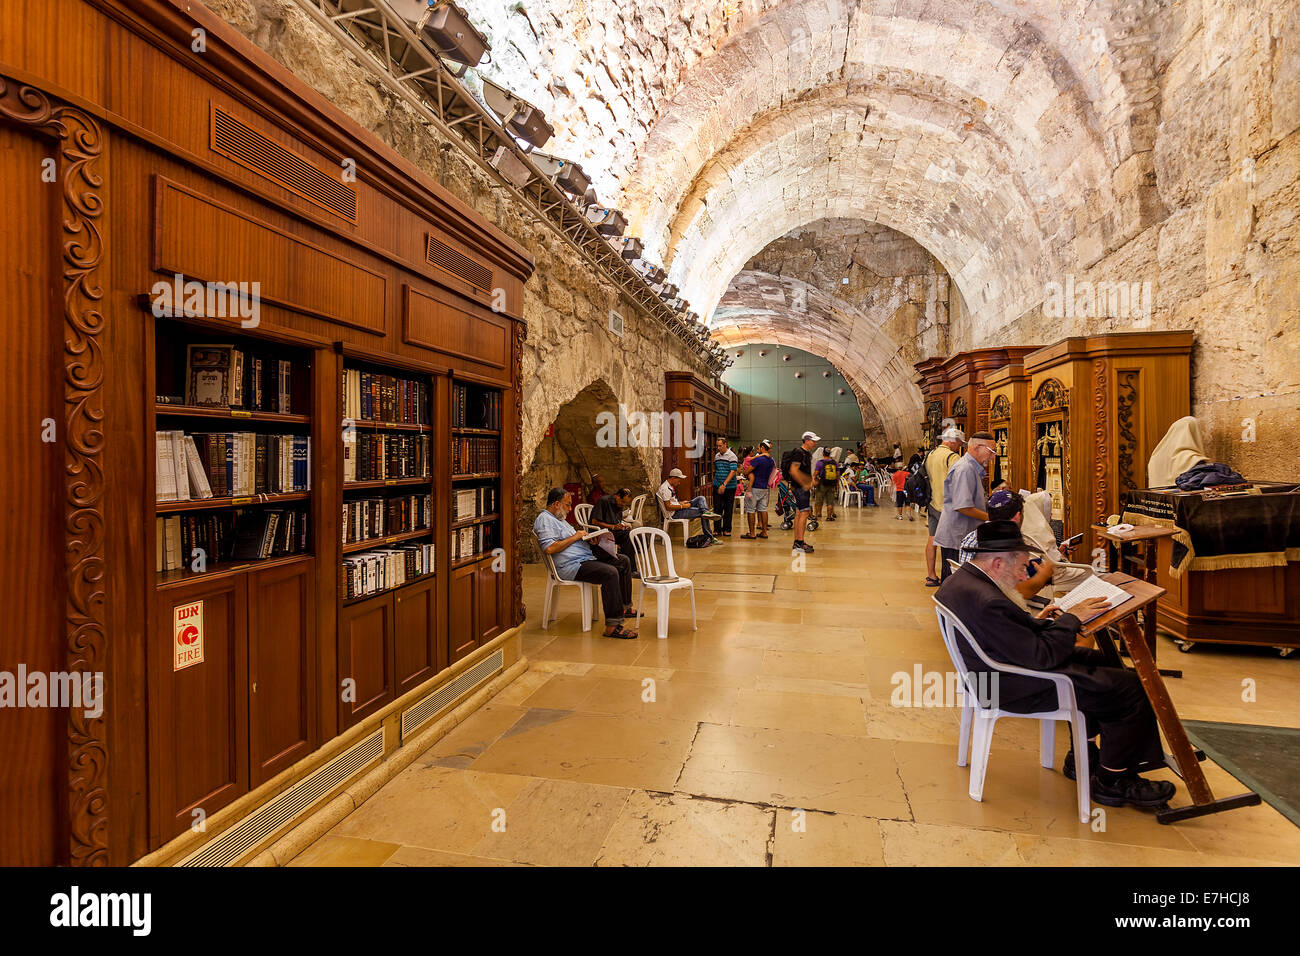 Prayers inside Cave Synagogue in Jerusalem, Israel. - Stock Image